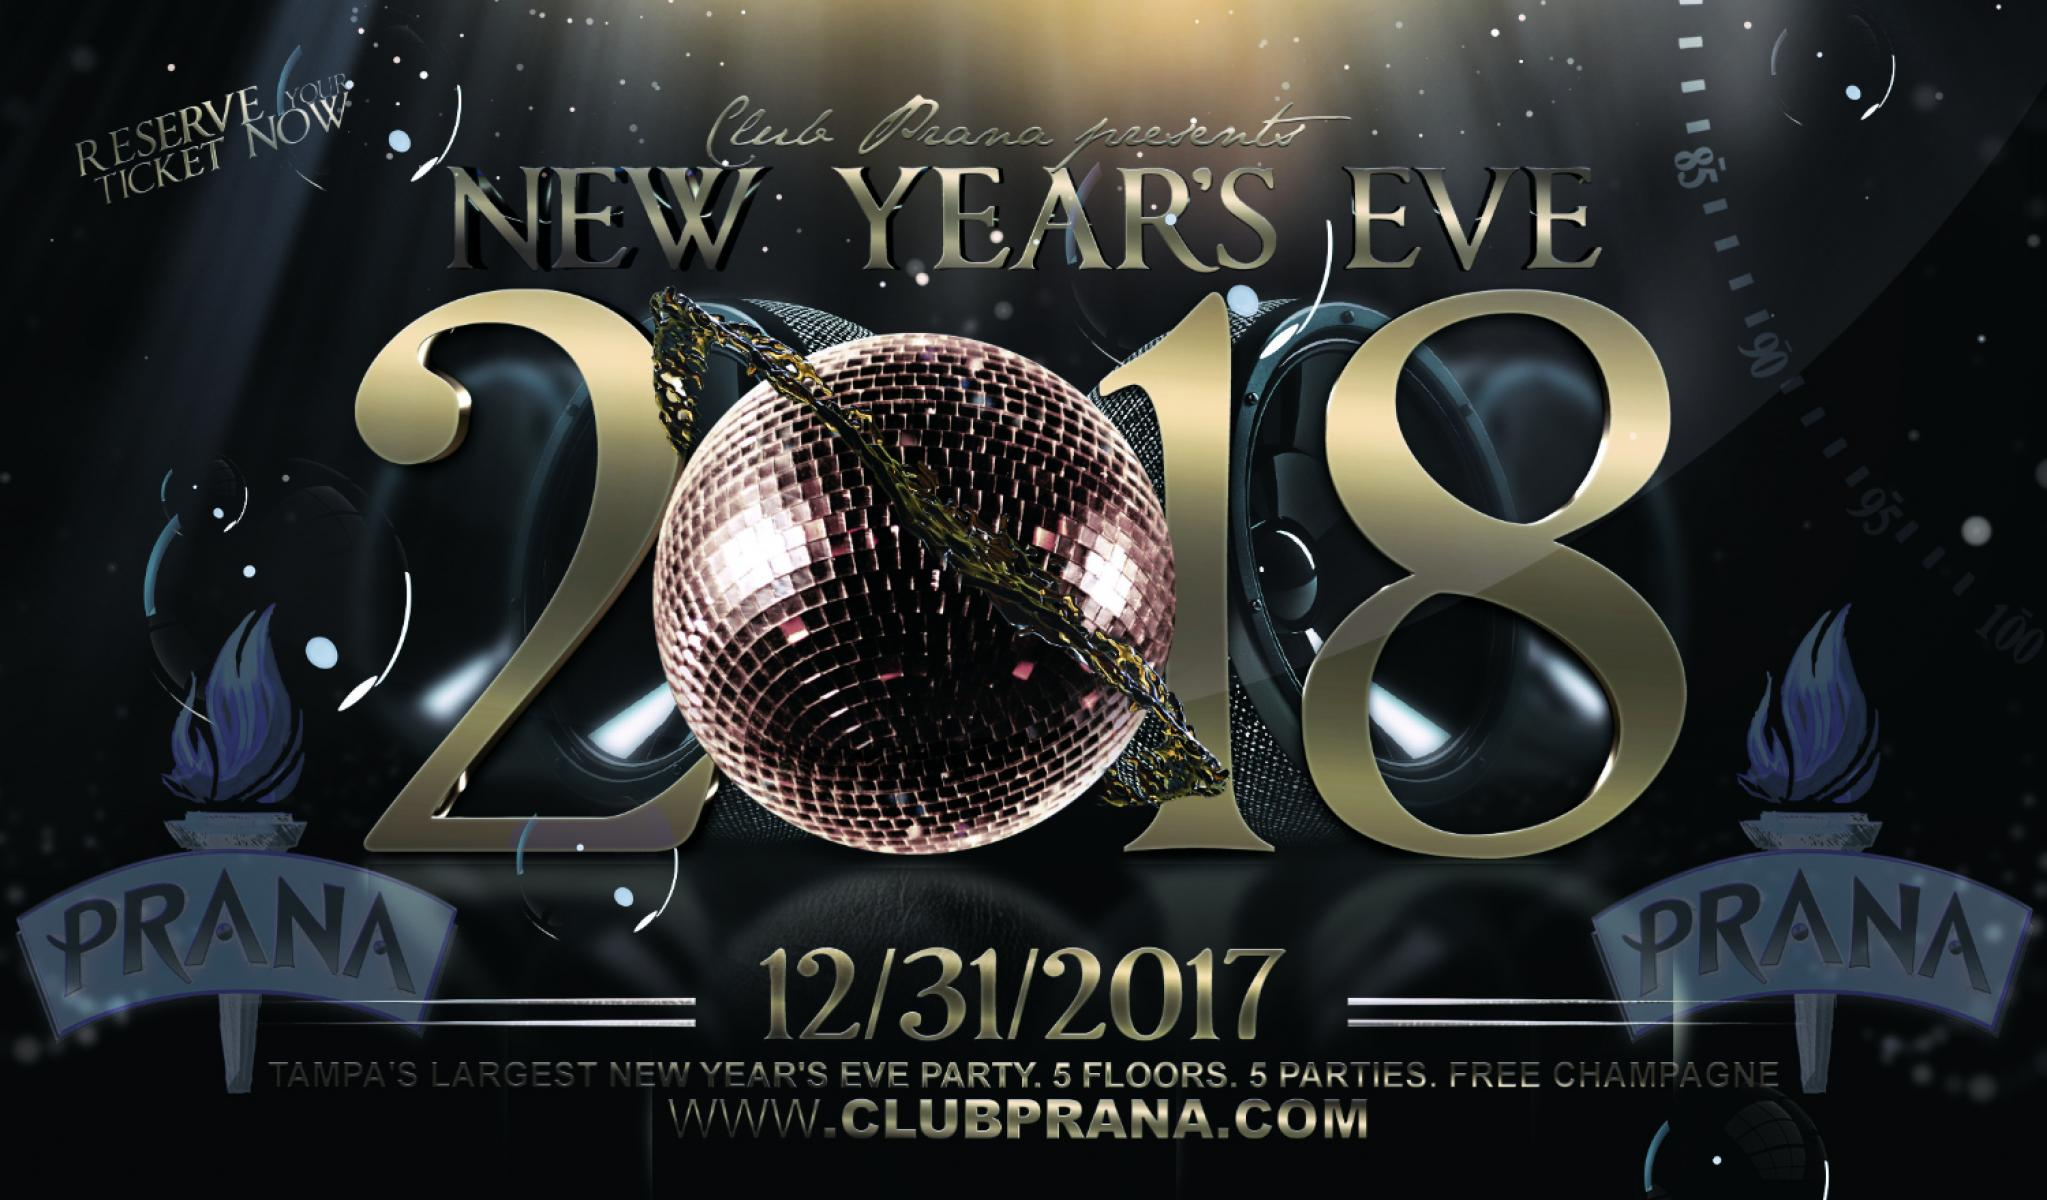 new years eve tampa 2019 events in tampa florida